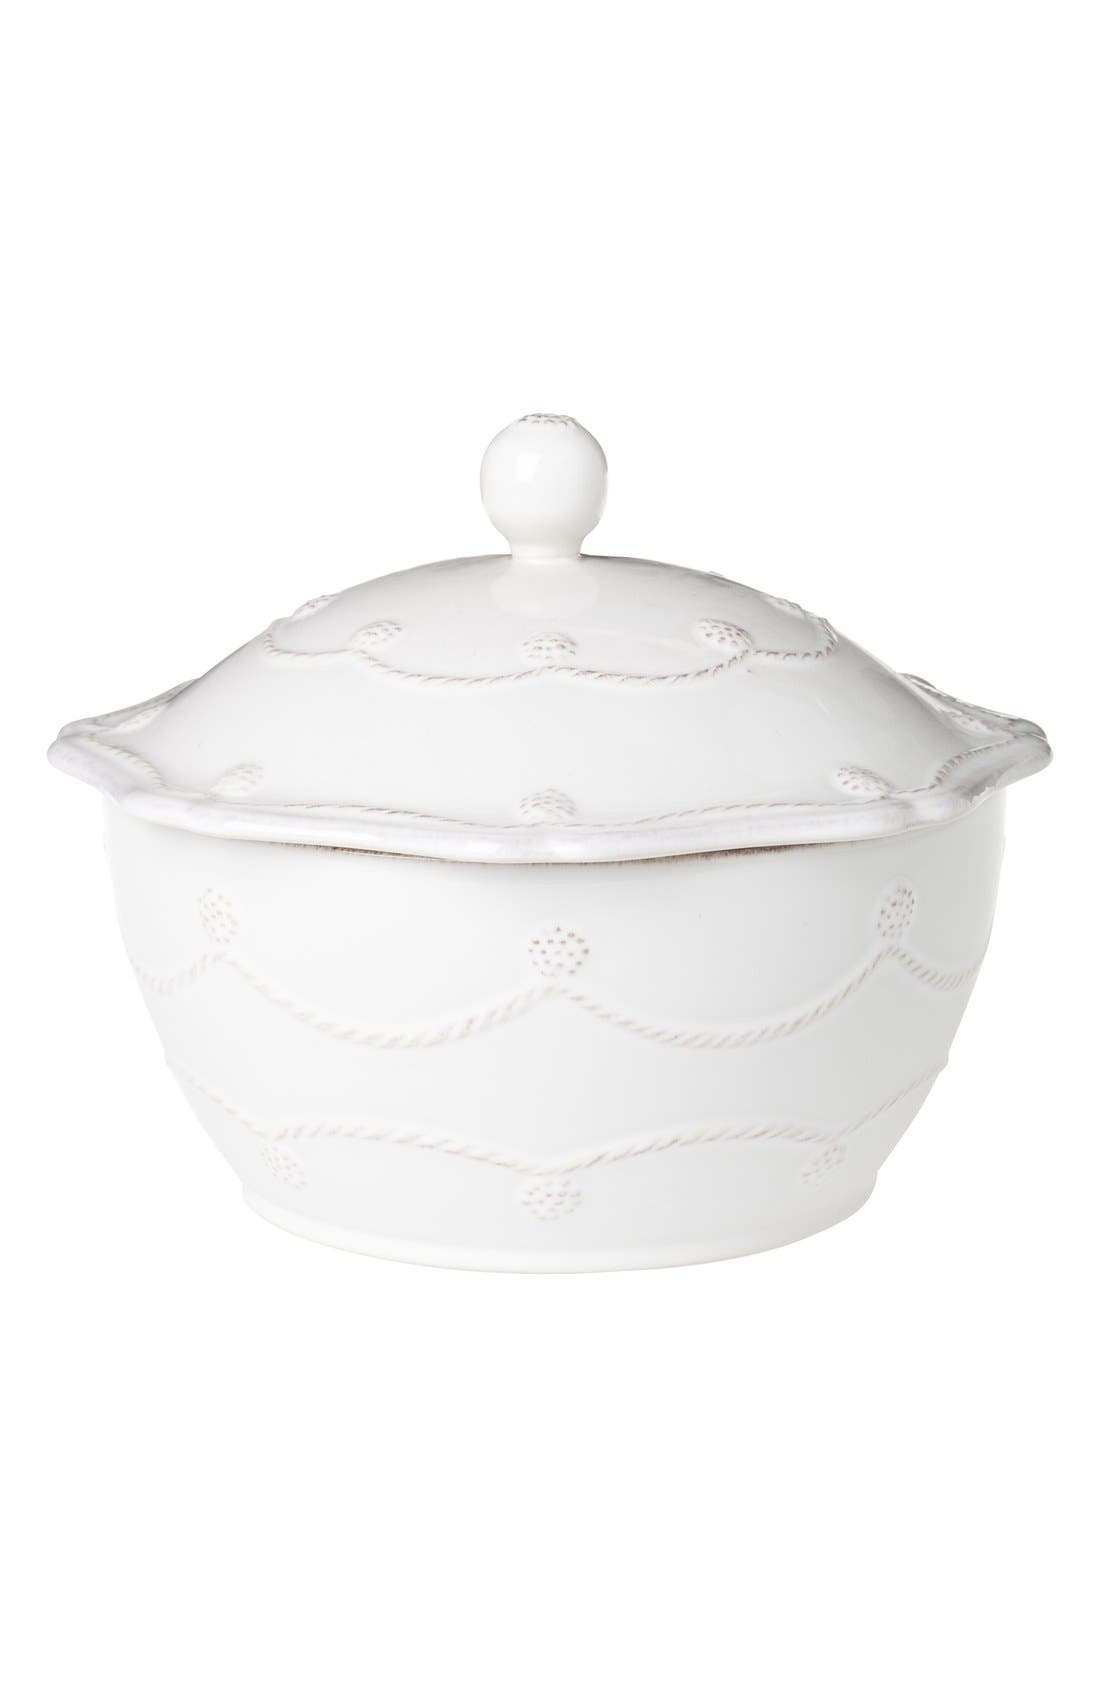 'Berry and Thread' Casserole Dish with Lid,                         Main,                         color, 100